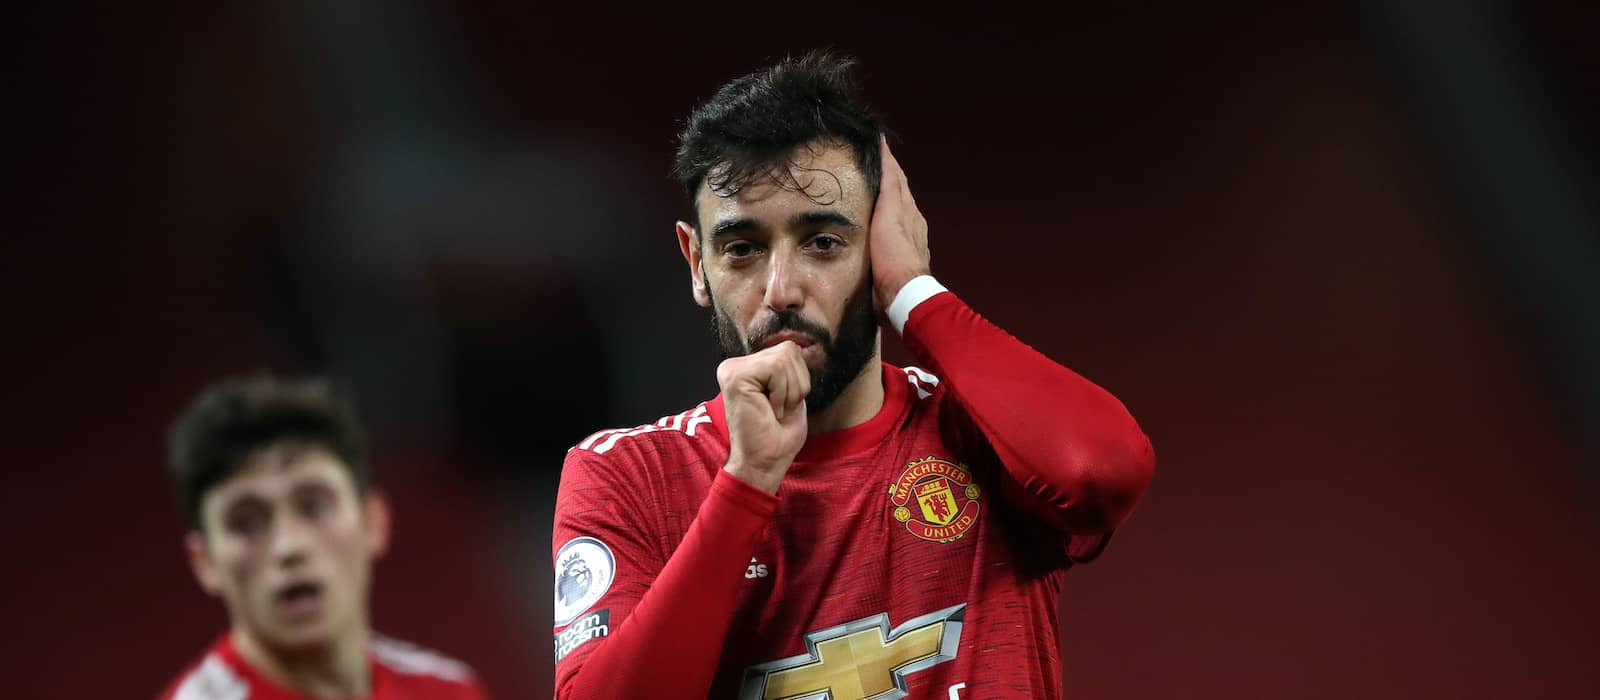 Bruno Fernandes doesn't always feel like celebrating at Man United